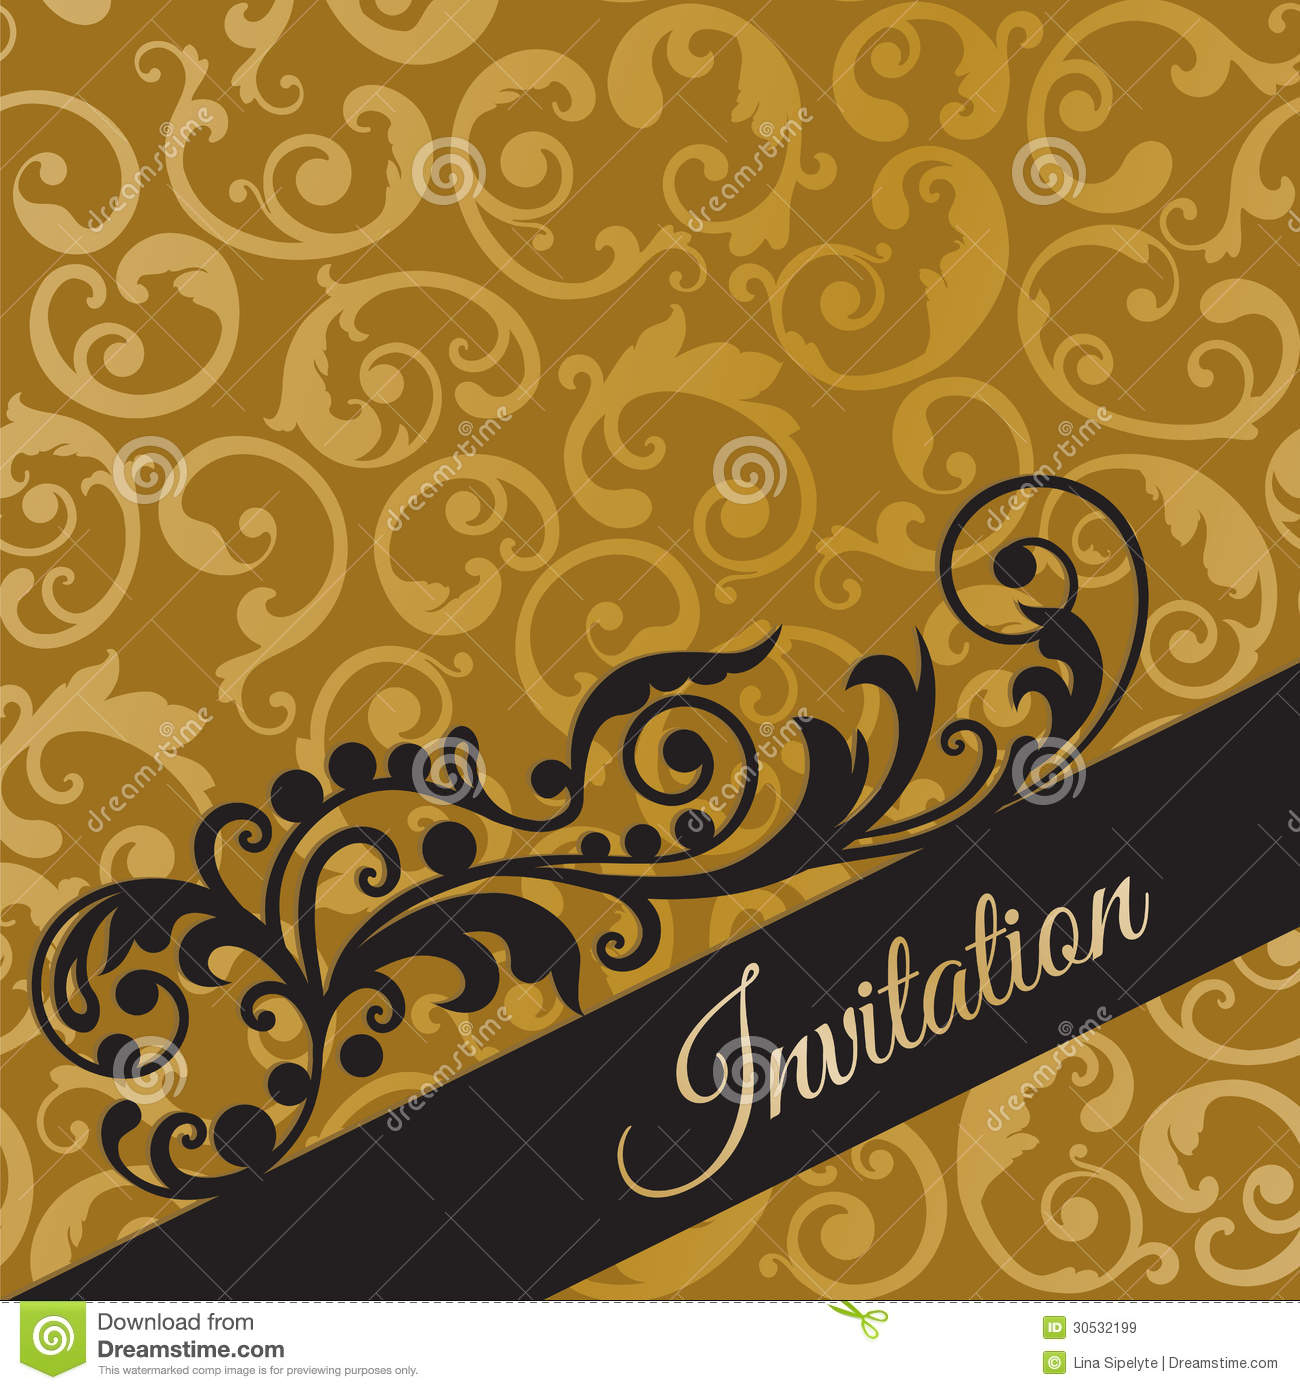 Luxury Black And Gold Invitation Card With Swirls Stock